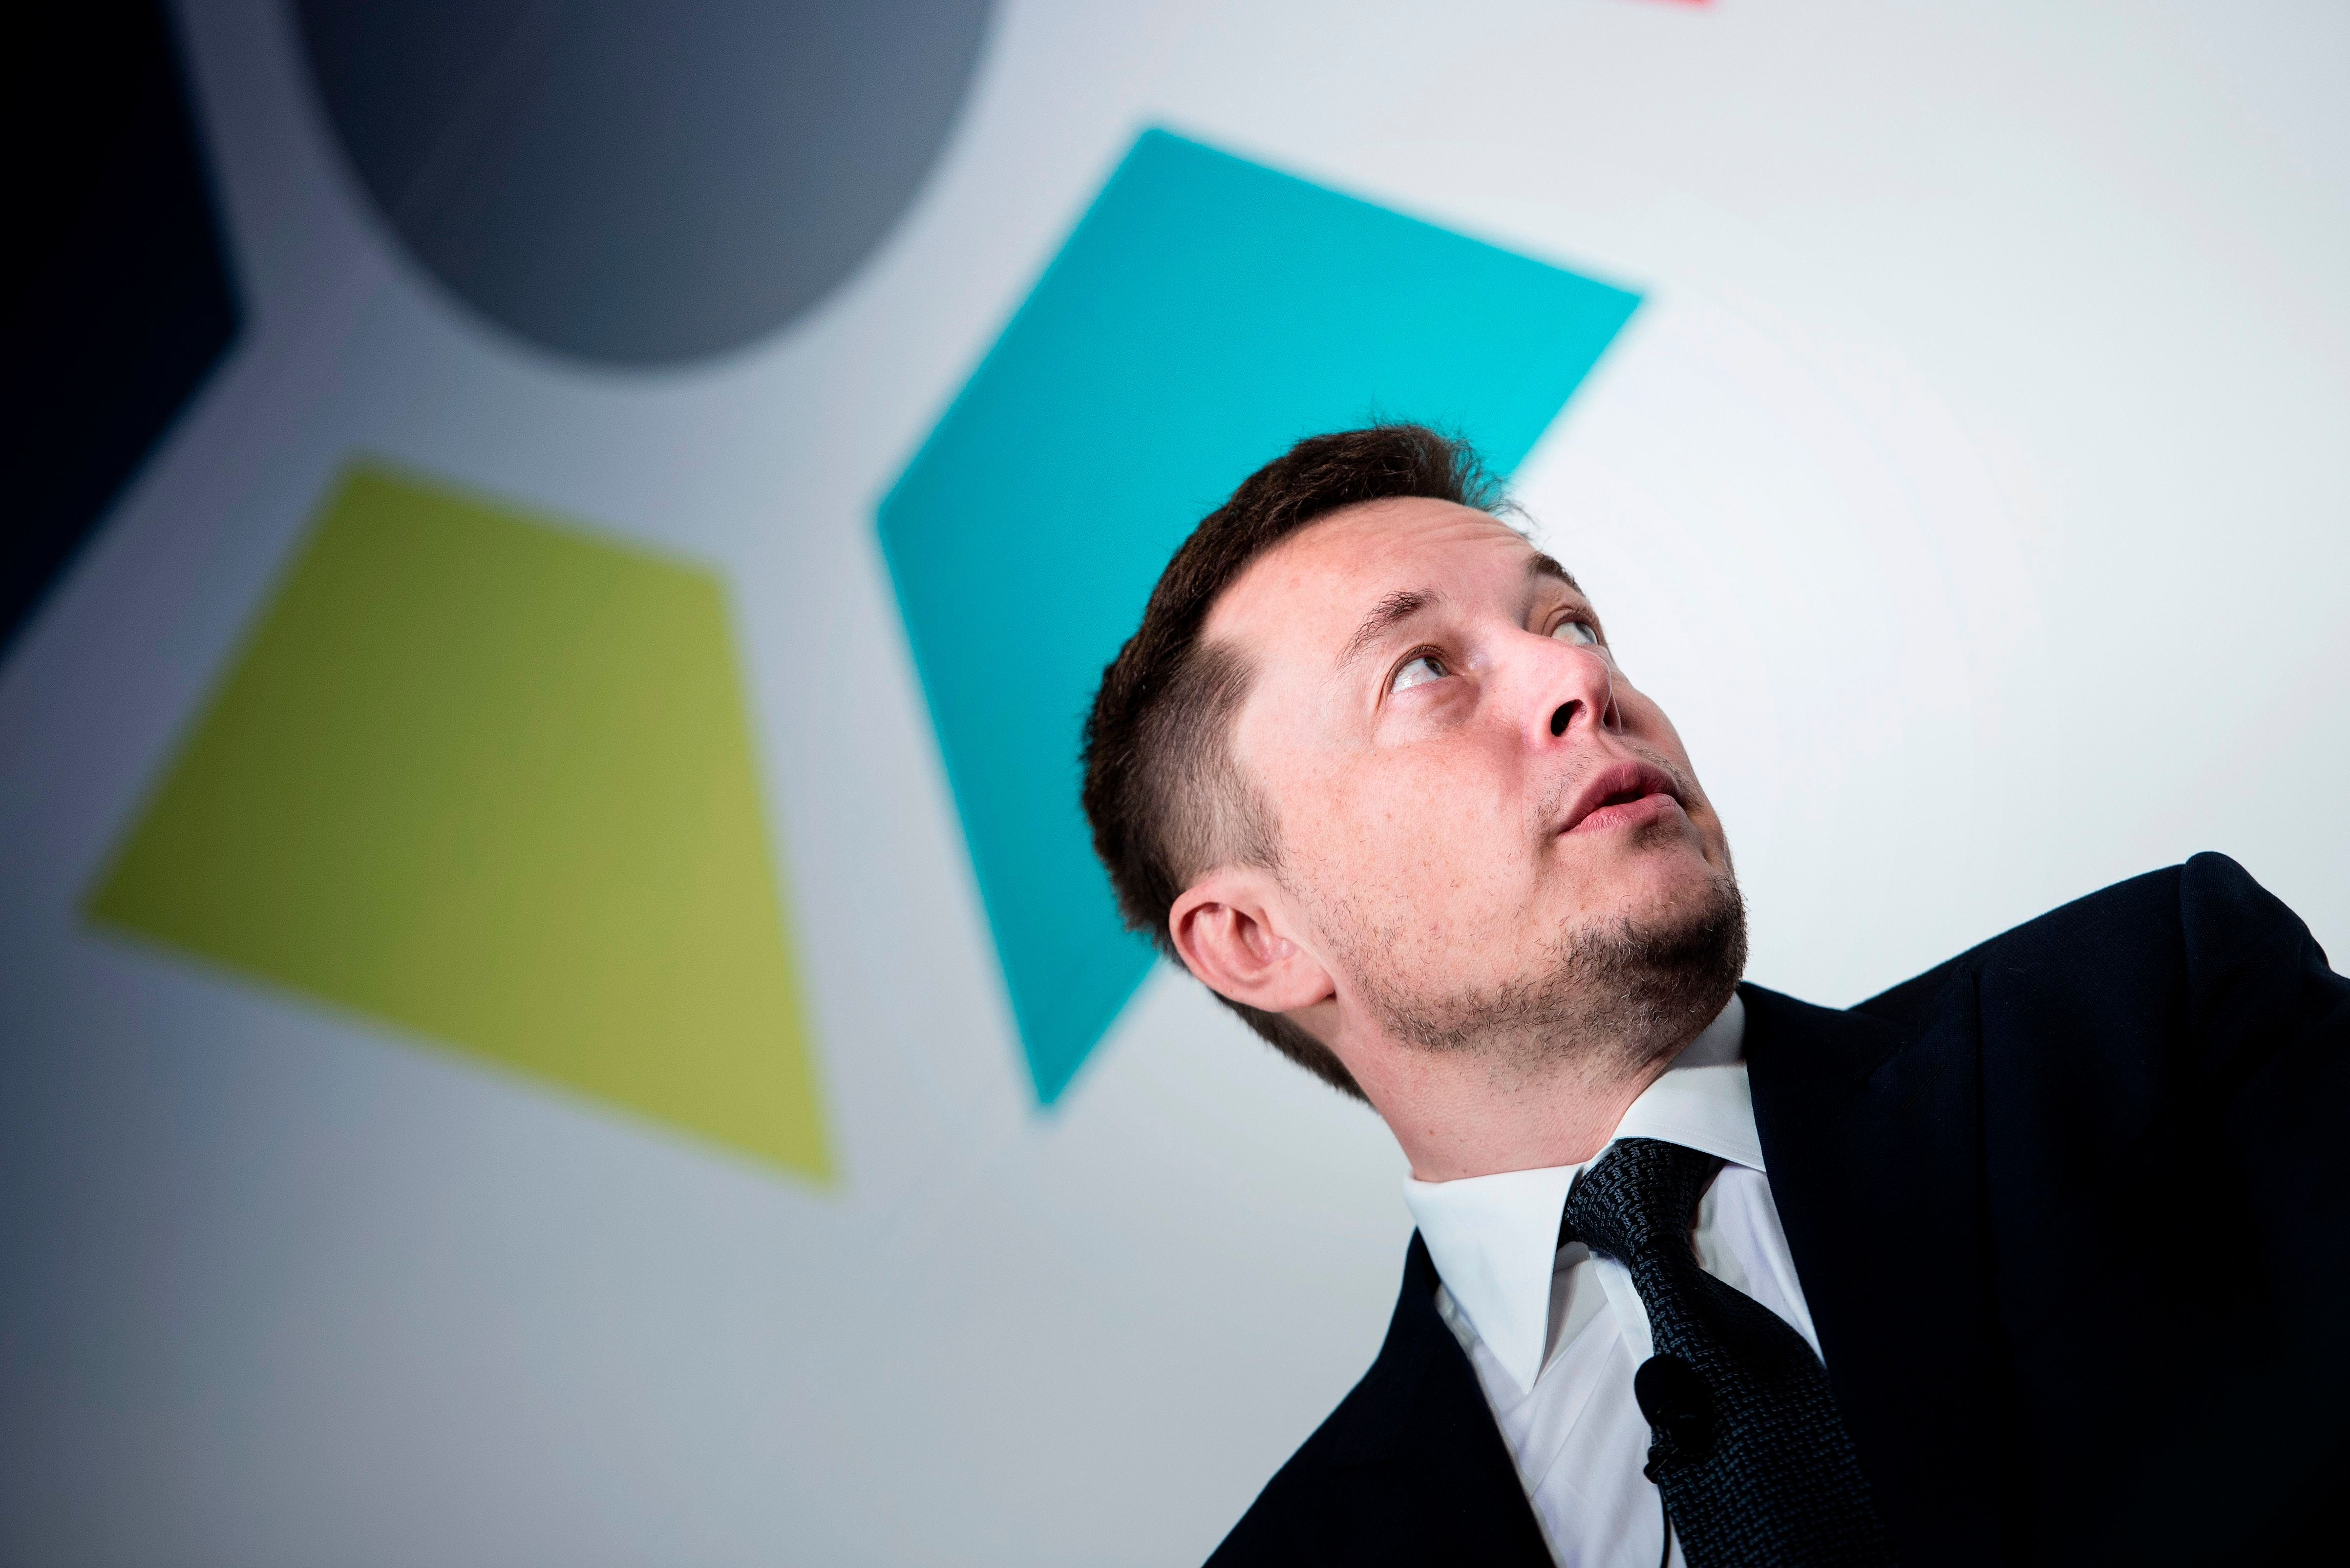 Elon Musk And Over 100 Experts Have Pleaded For A Total Ban On Killer